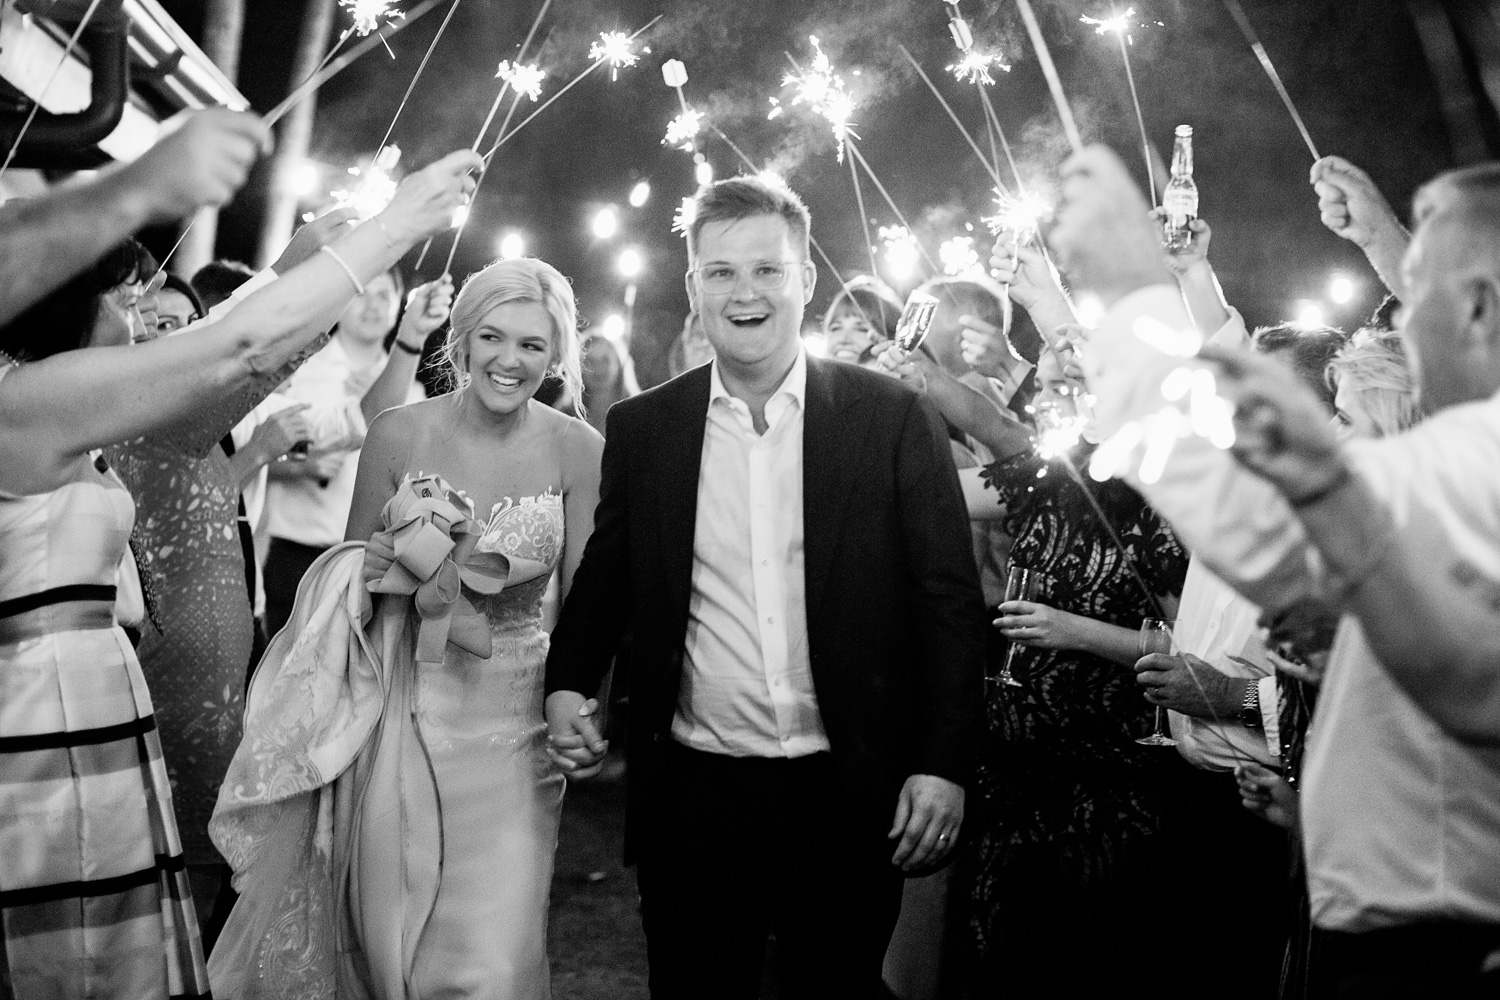 wedding-0164-outrigger-reception-sparklers-exit-excited-queensland.jpg